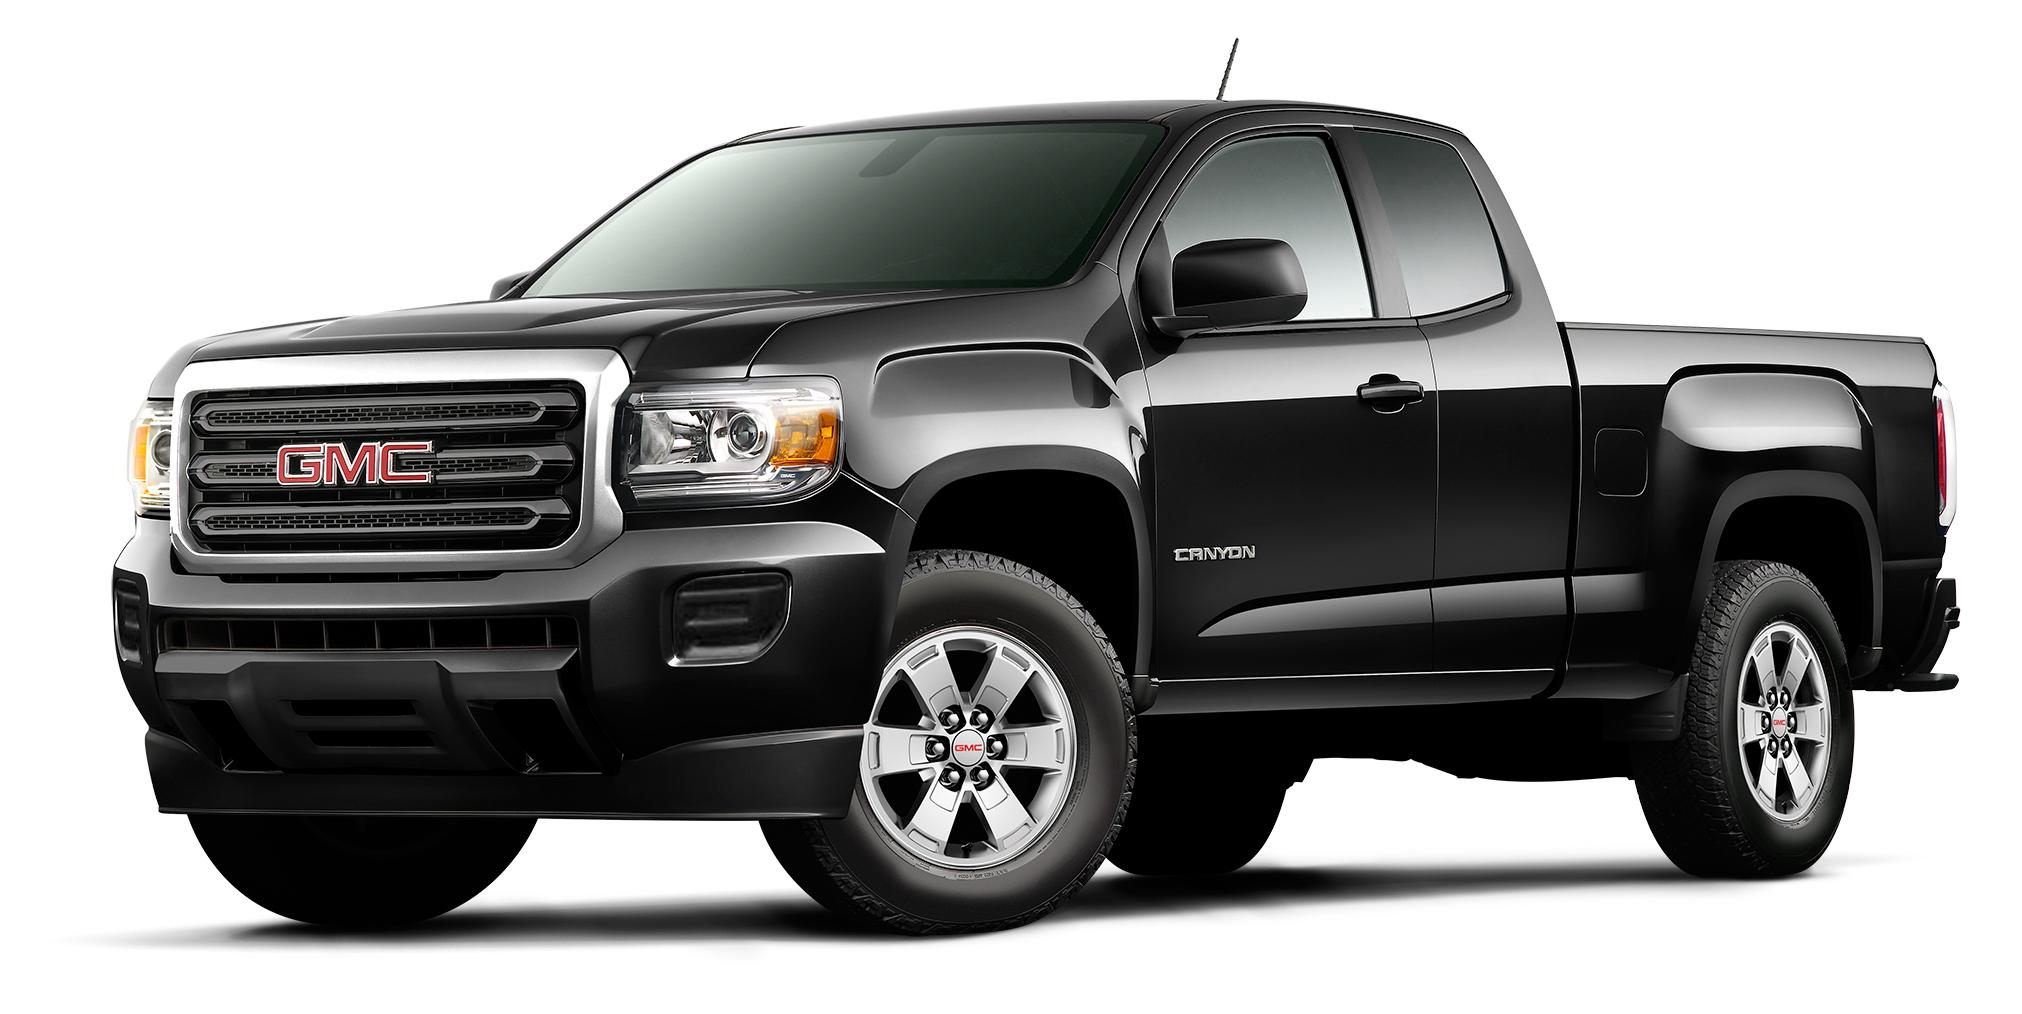 2017 GMC Canyon Black Winnipeg